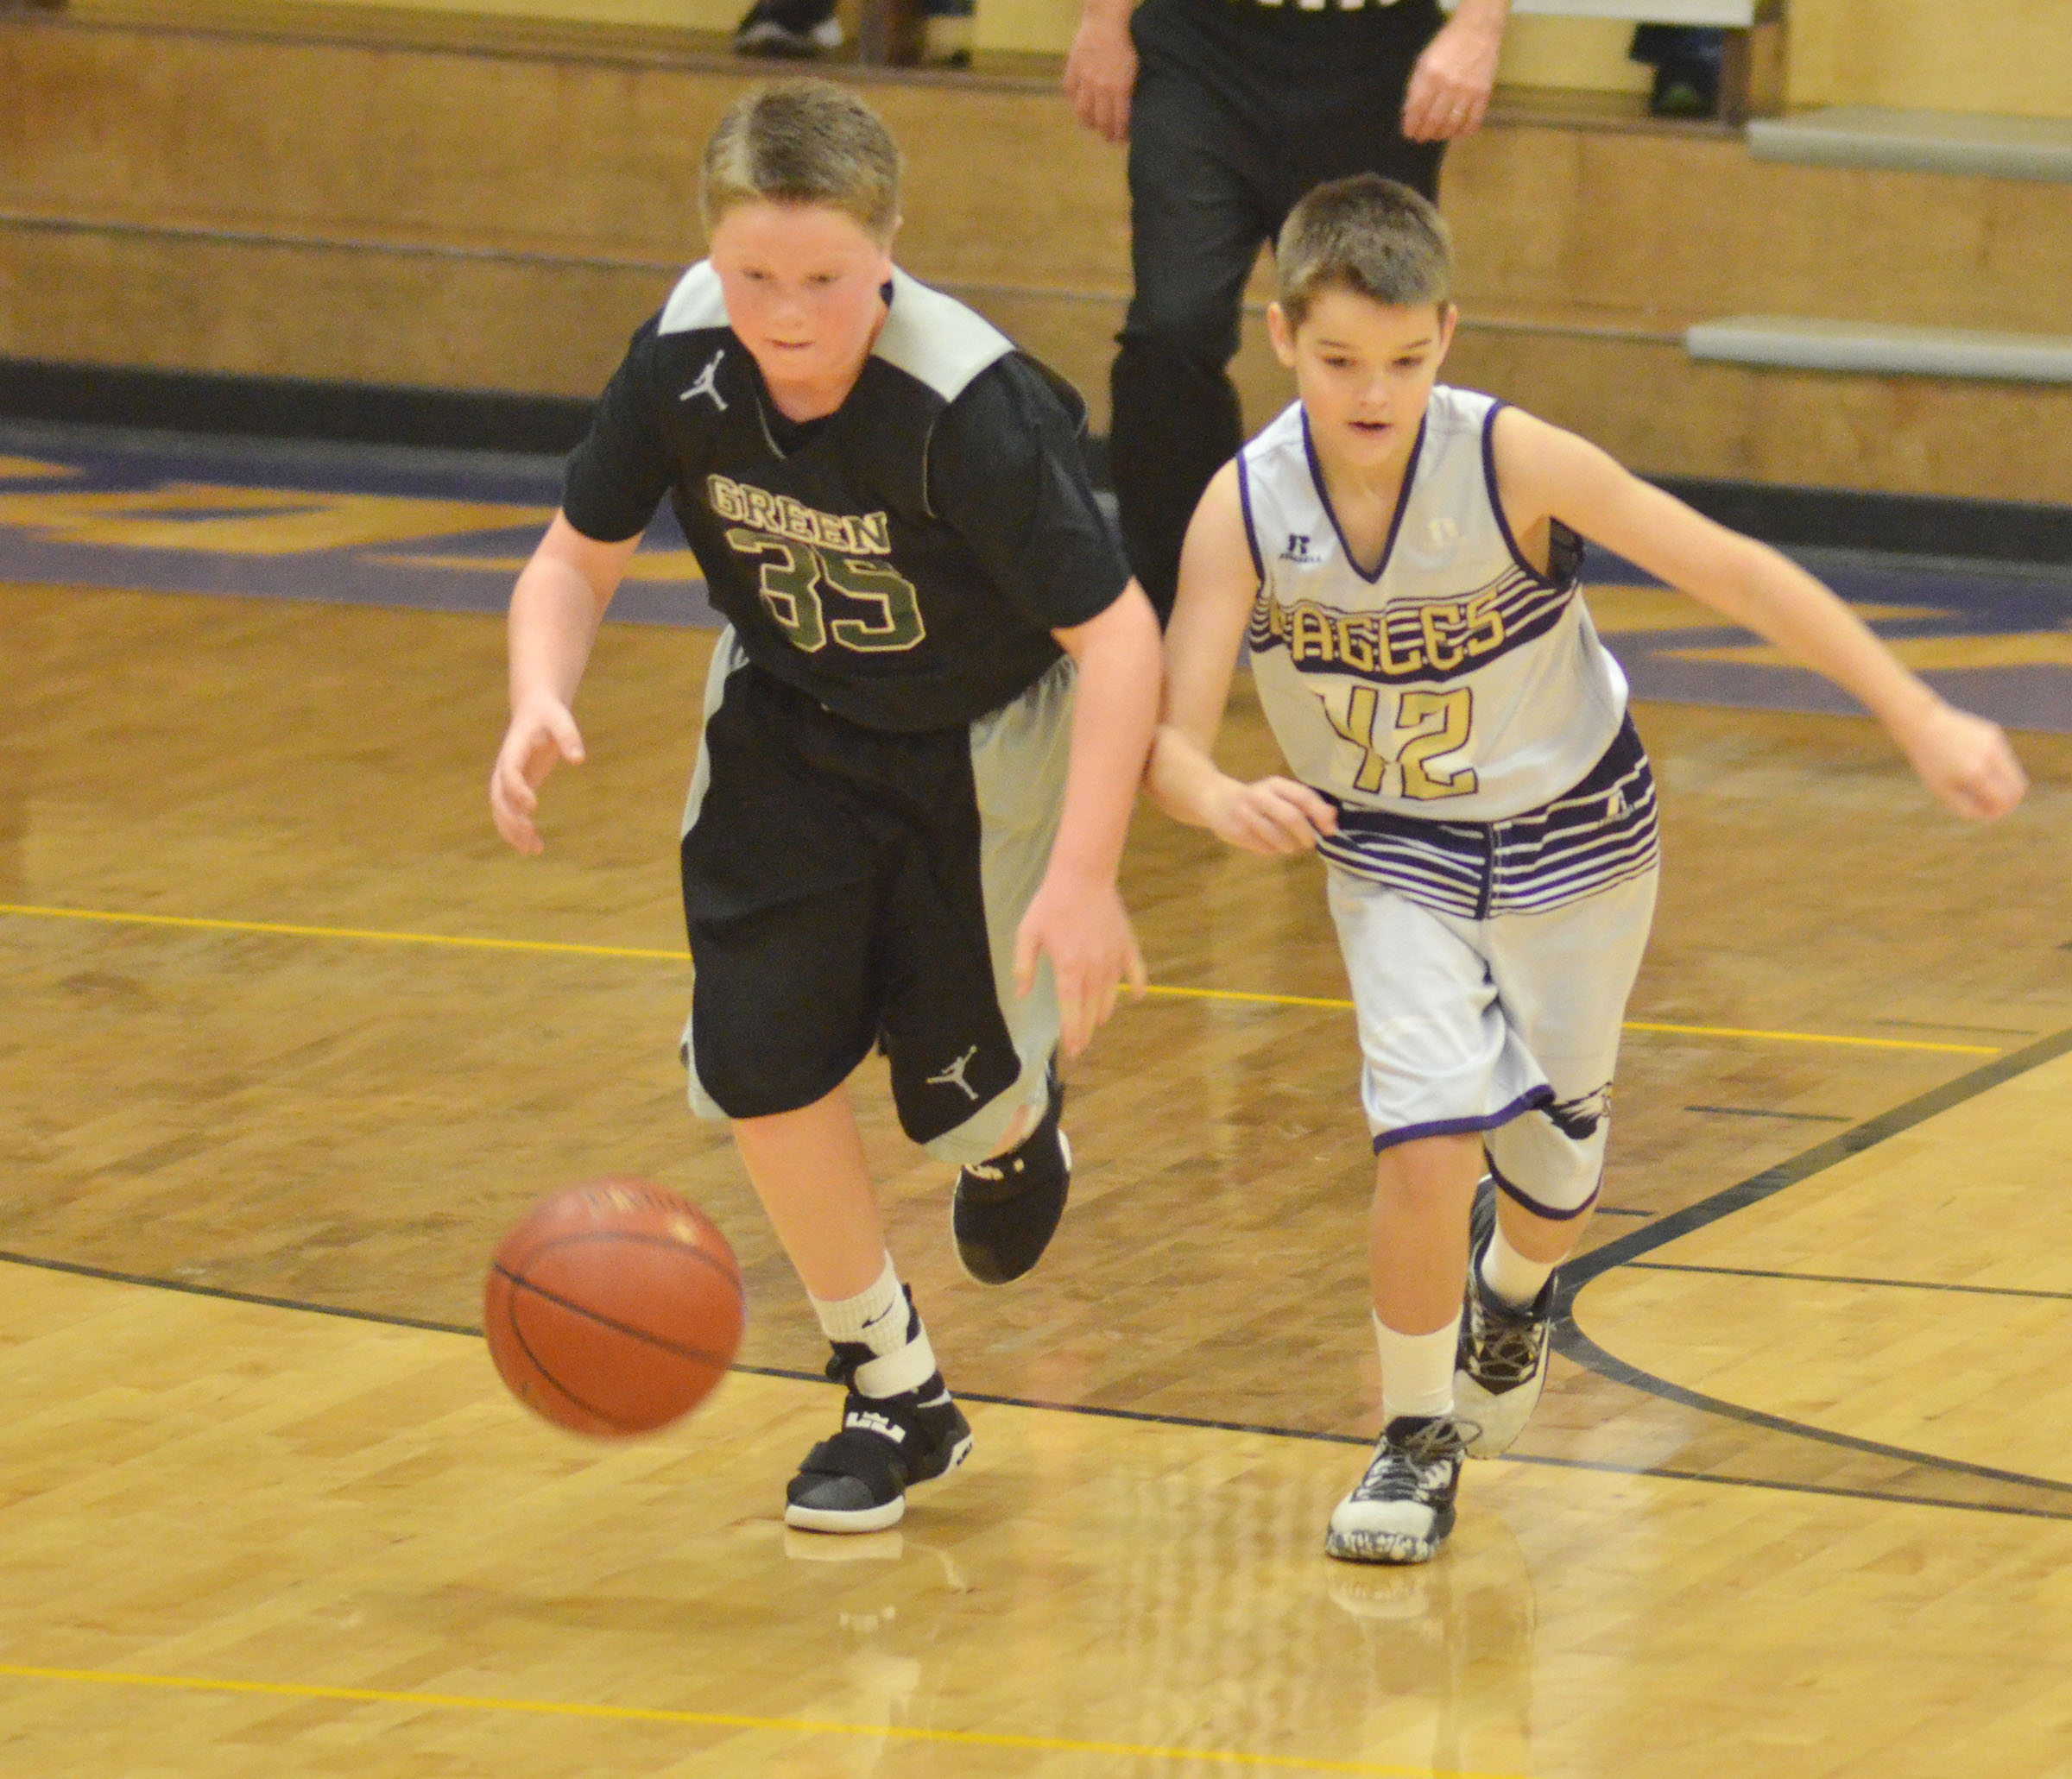 CMS sixth-grader Kaden Bloyd runs for the ball.